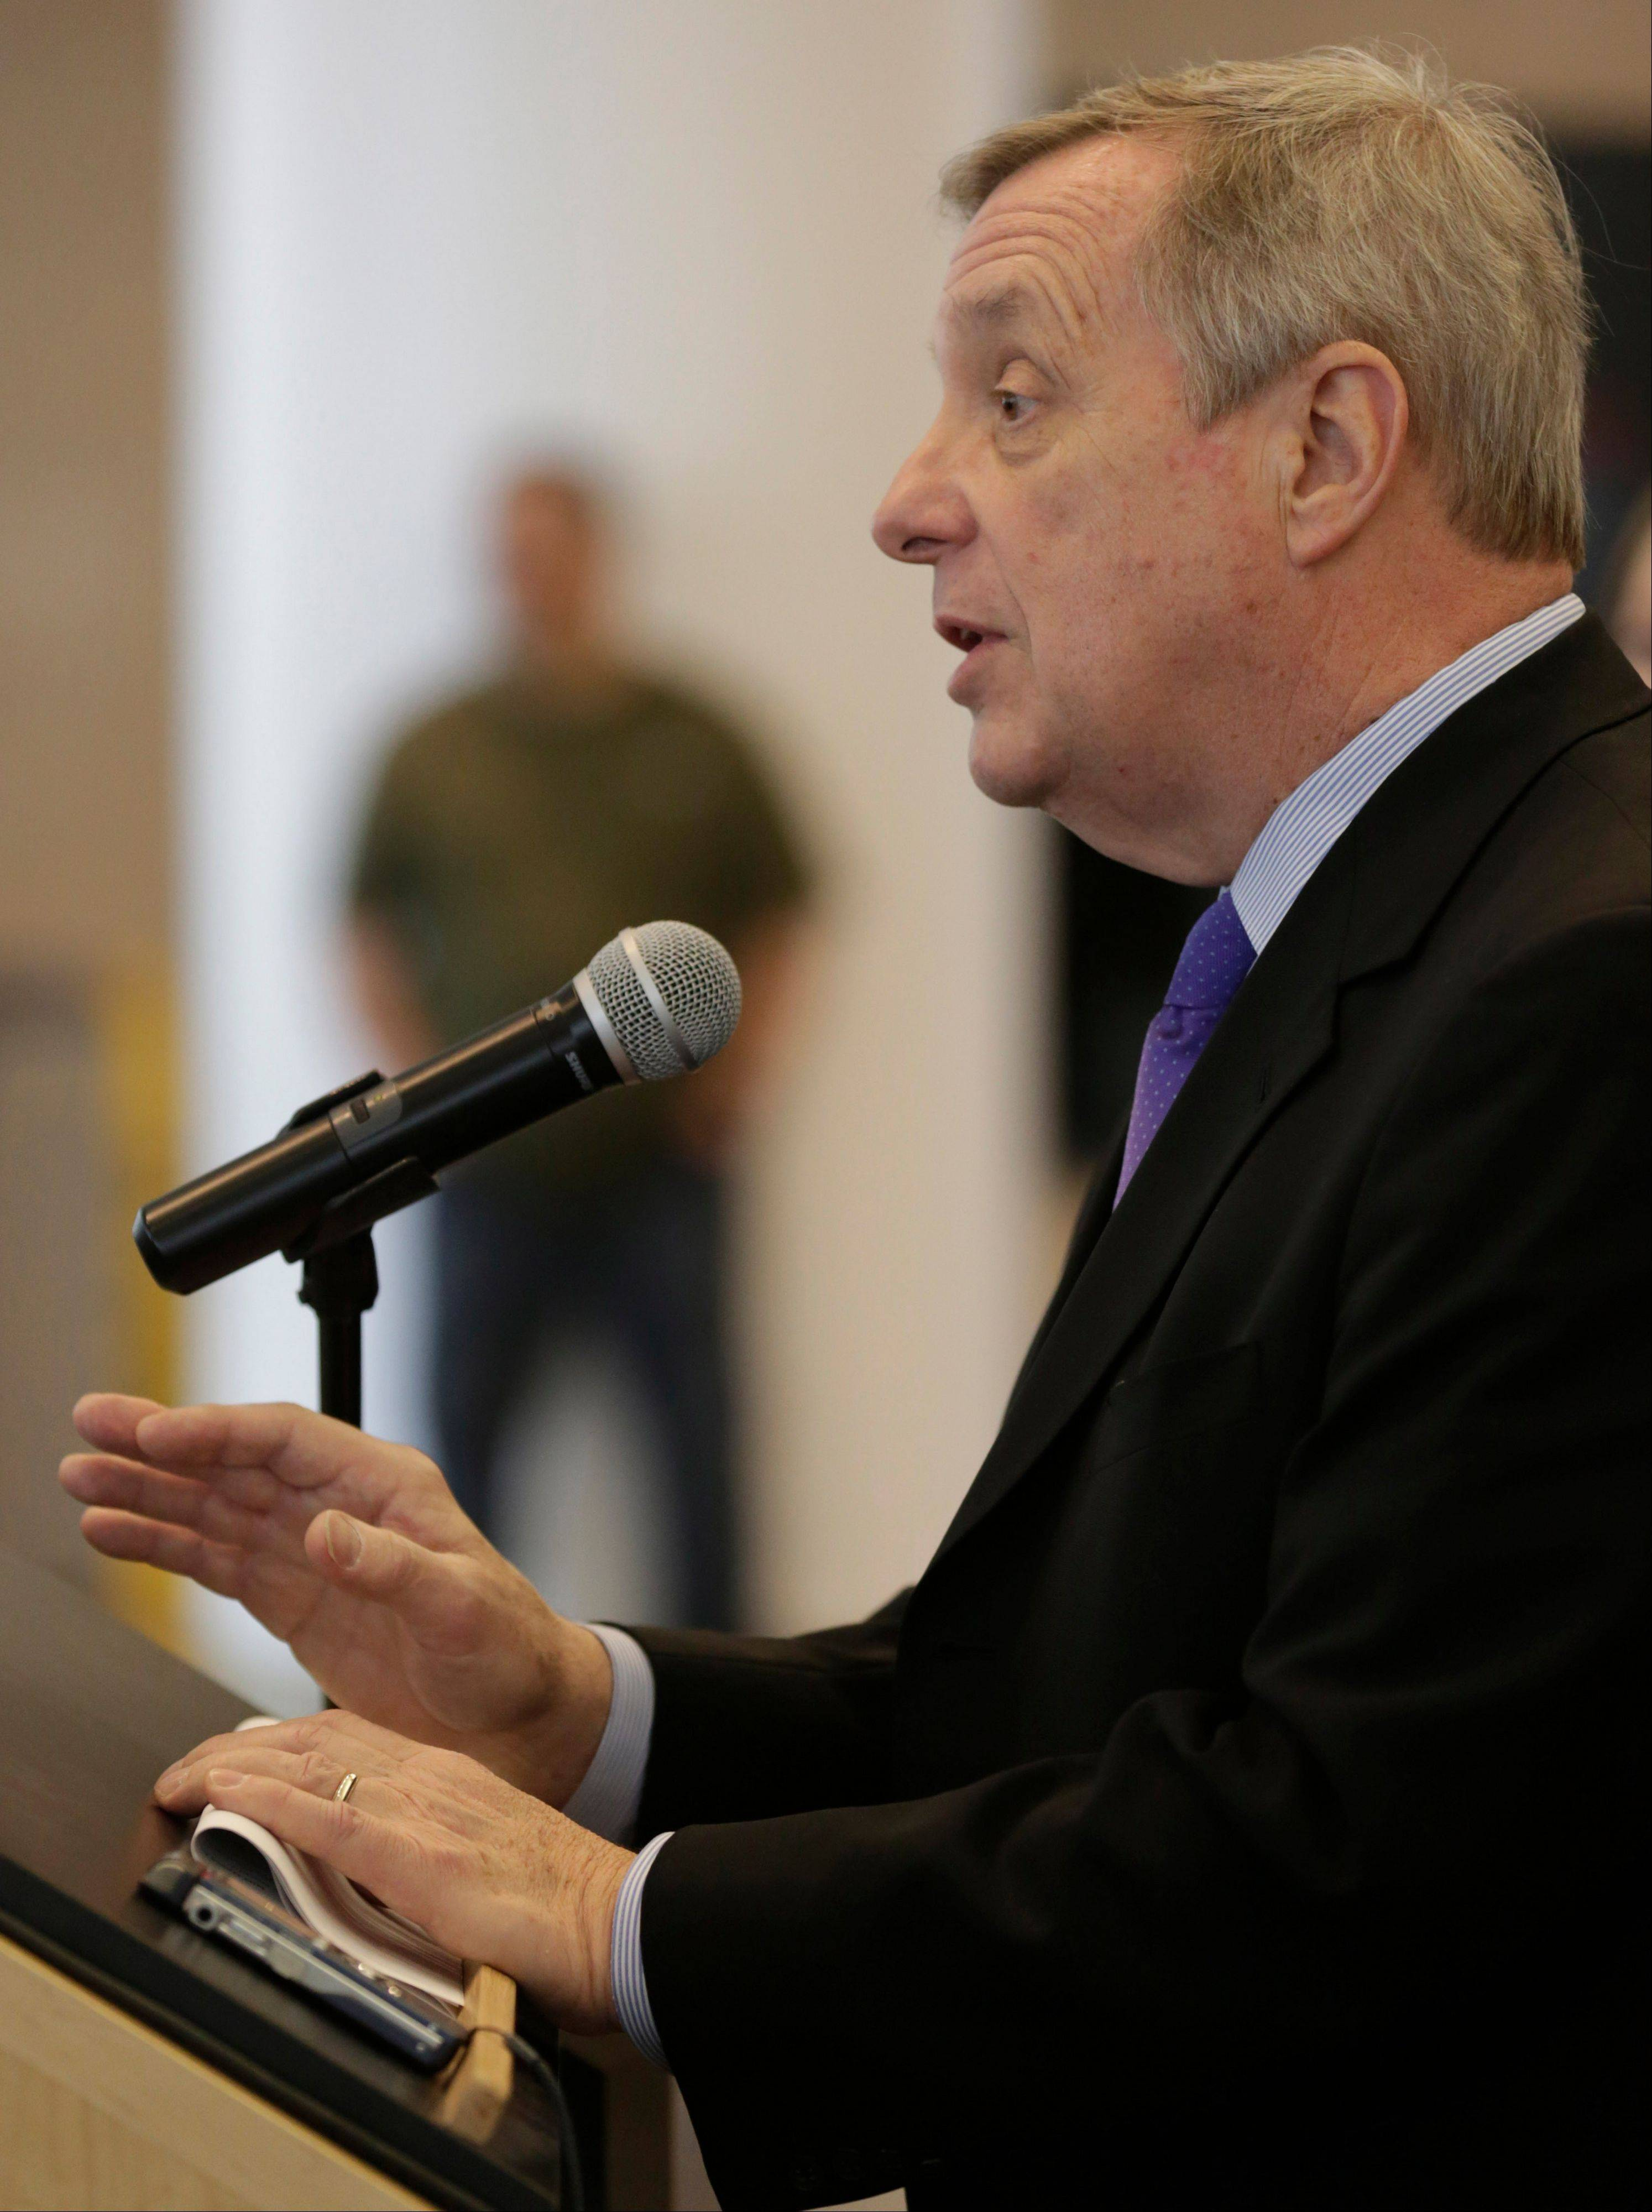 Sen. Dick Durbin said a bipartisan immigration bill introduced this week would enhance national security.